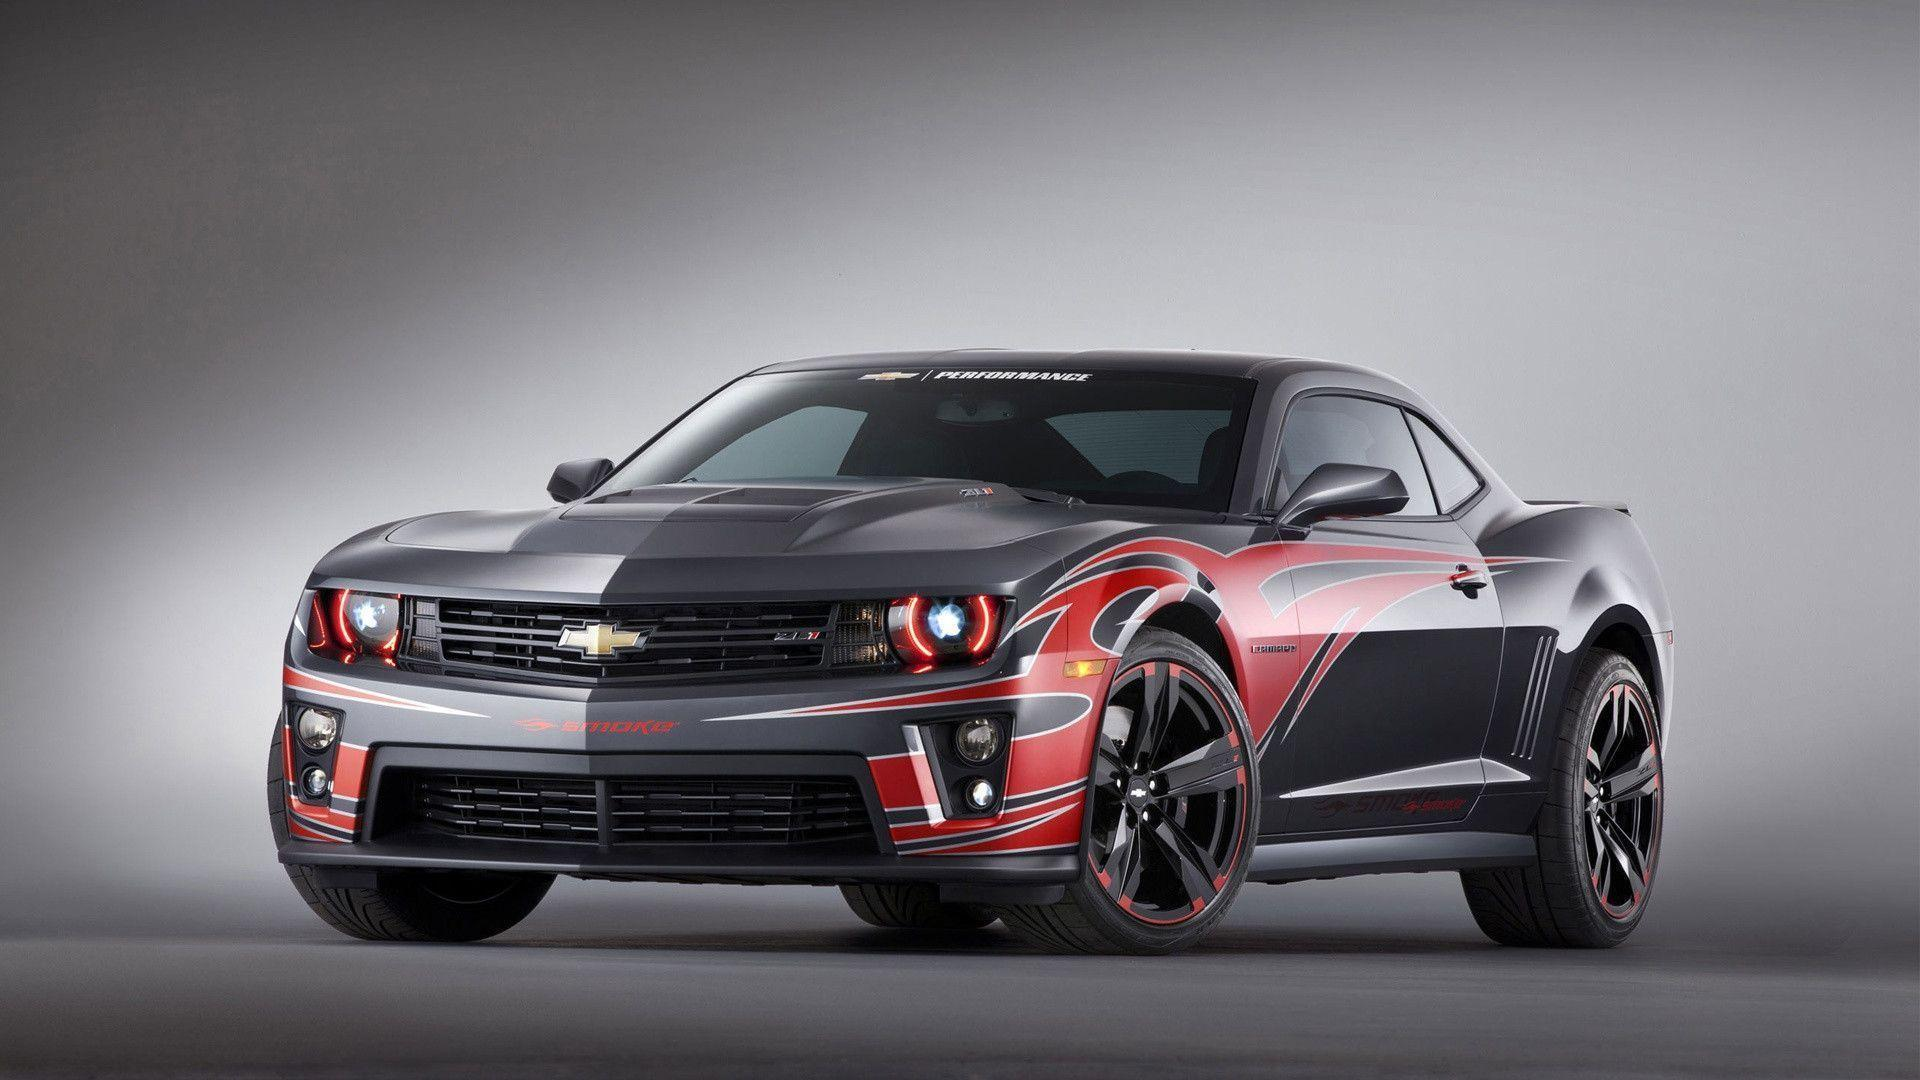 2012 Chevrolet Camaro ZL1 Wallpapers | HD Wallpapers